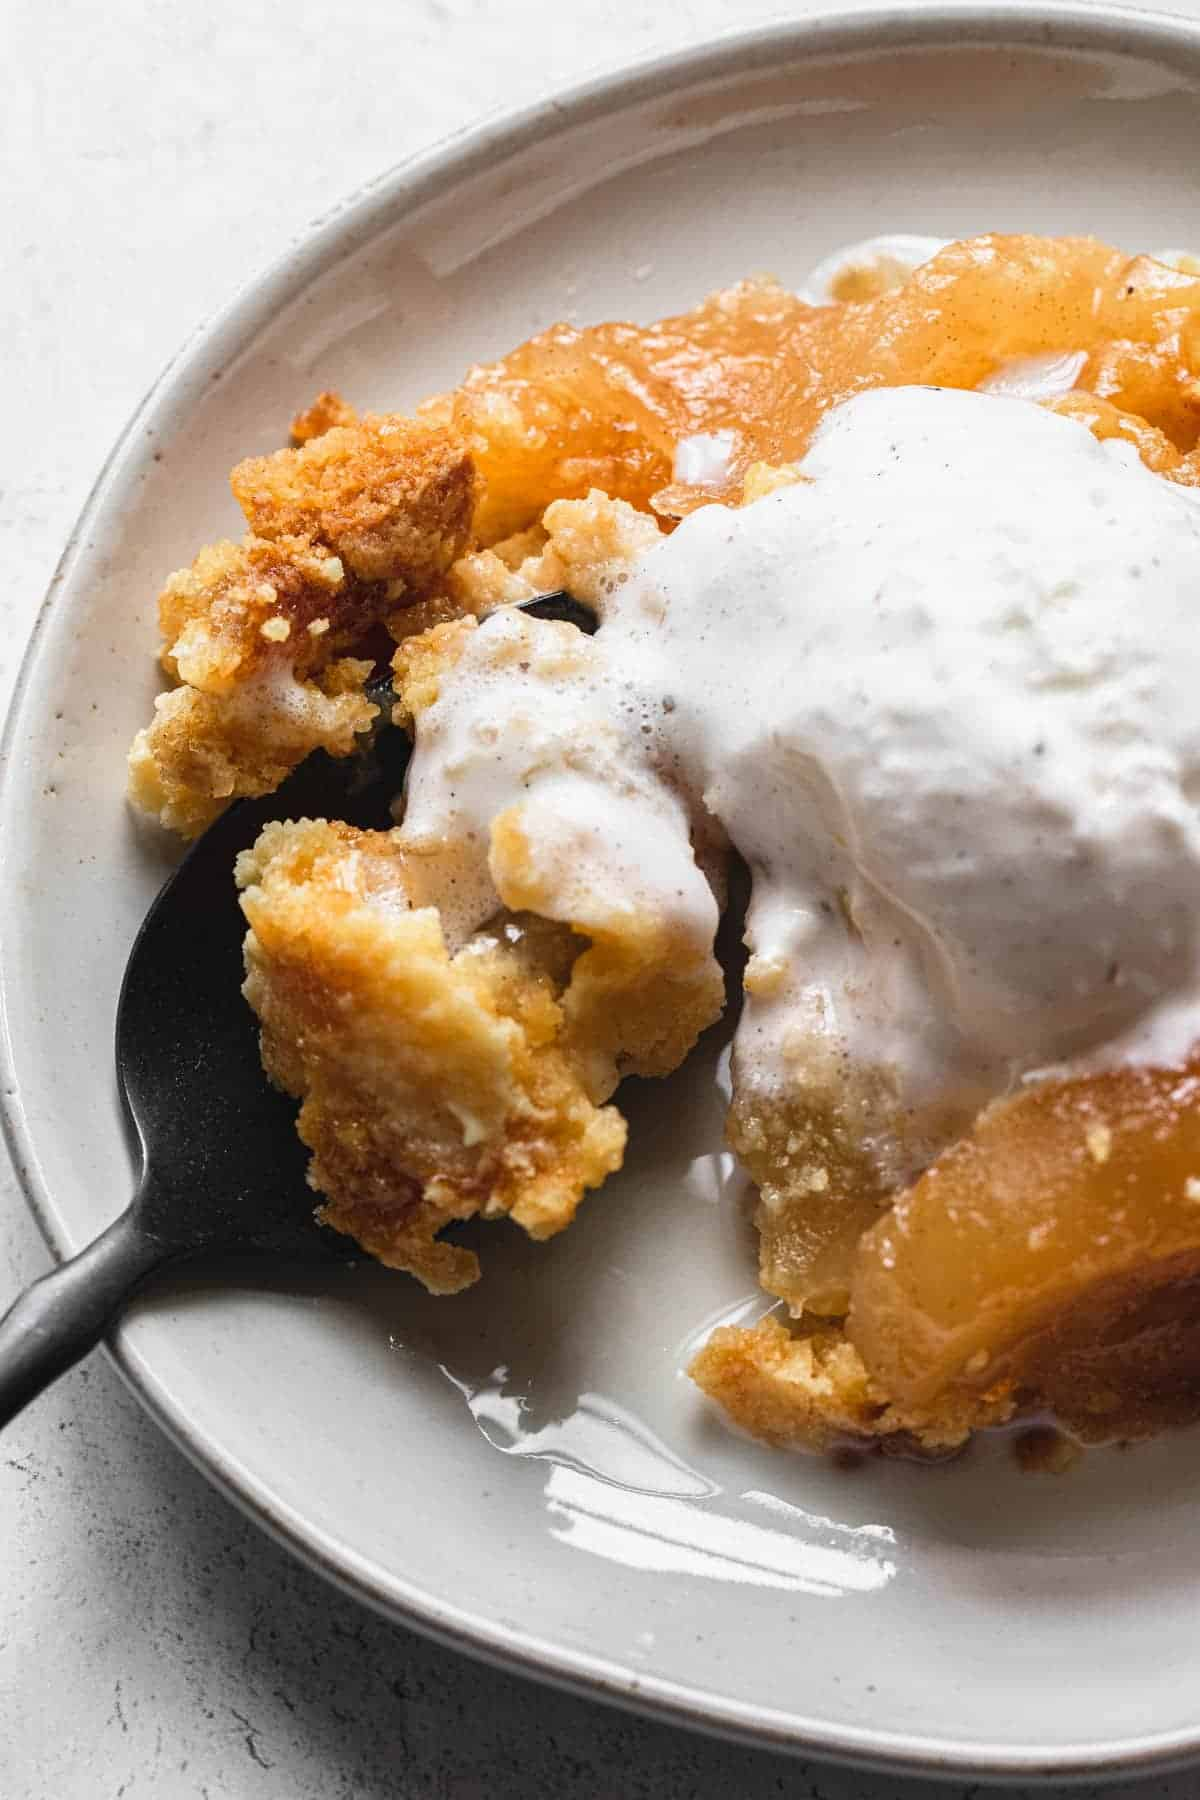 apple dump cake on a plate with melting vanilla ice cream and a spoon